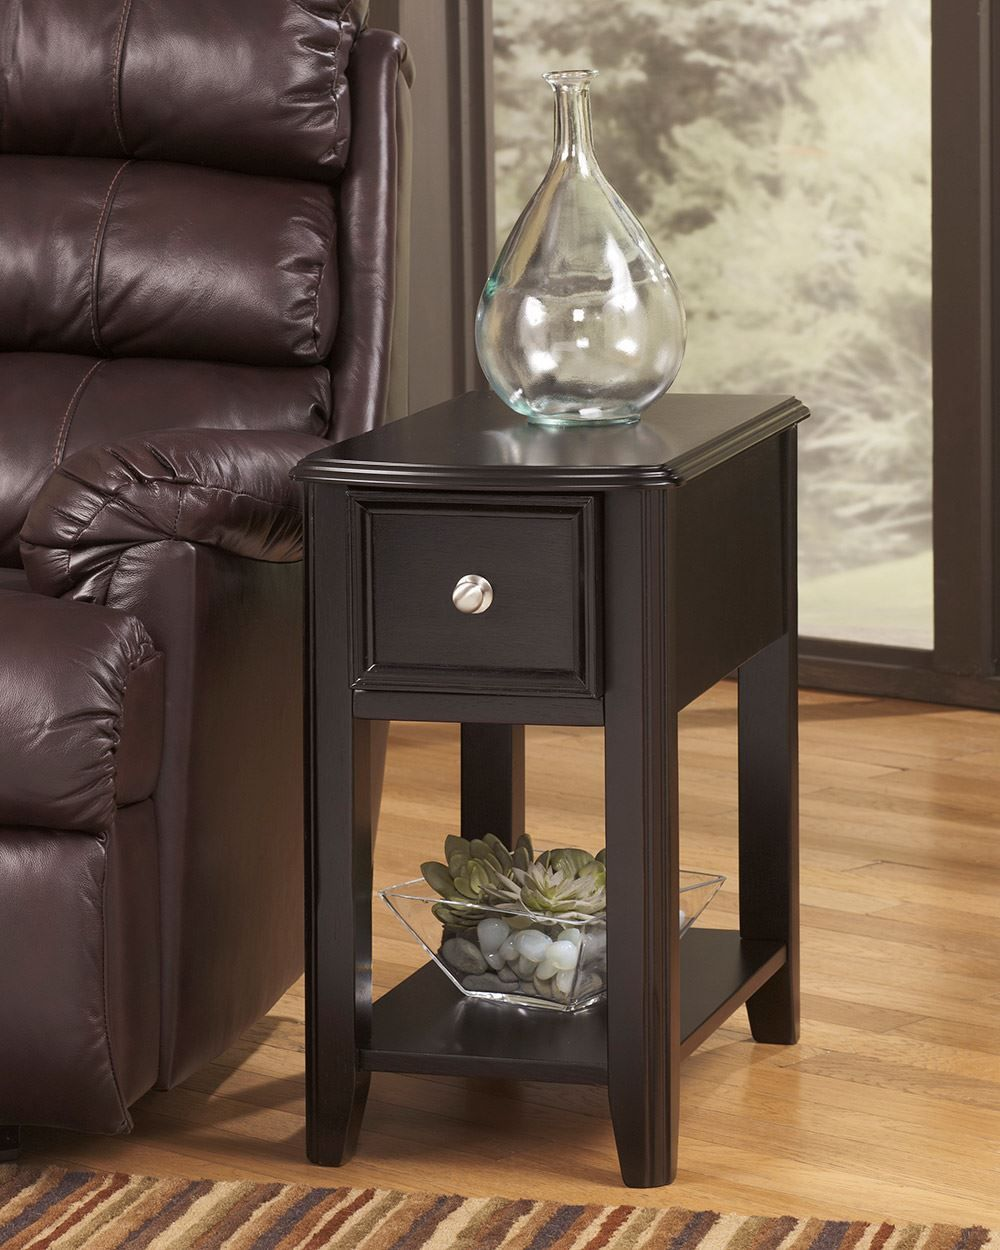 Picture of Dark Finish Chairside End Table